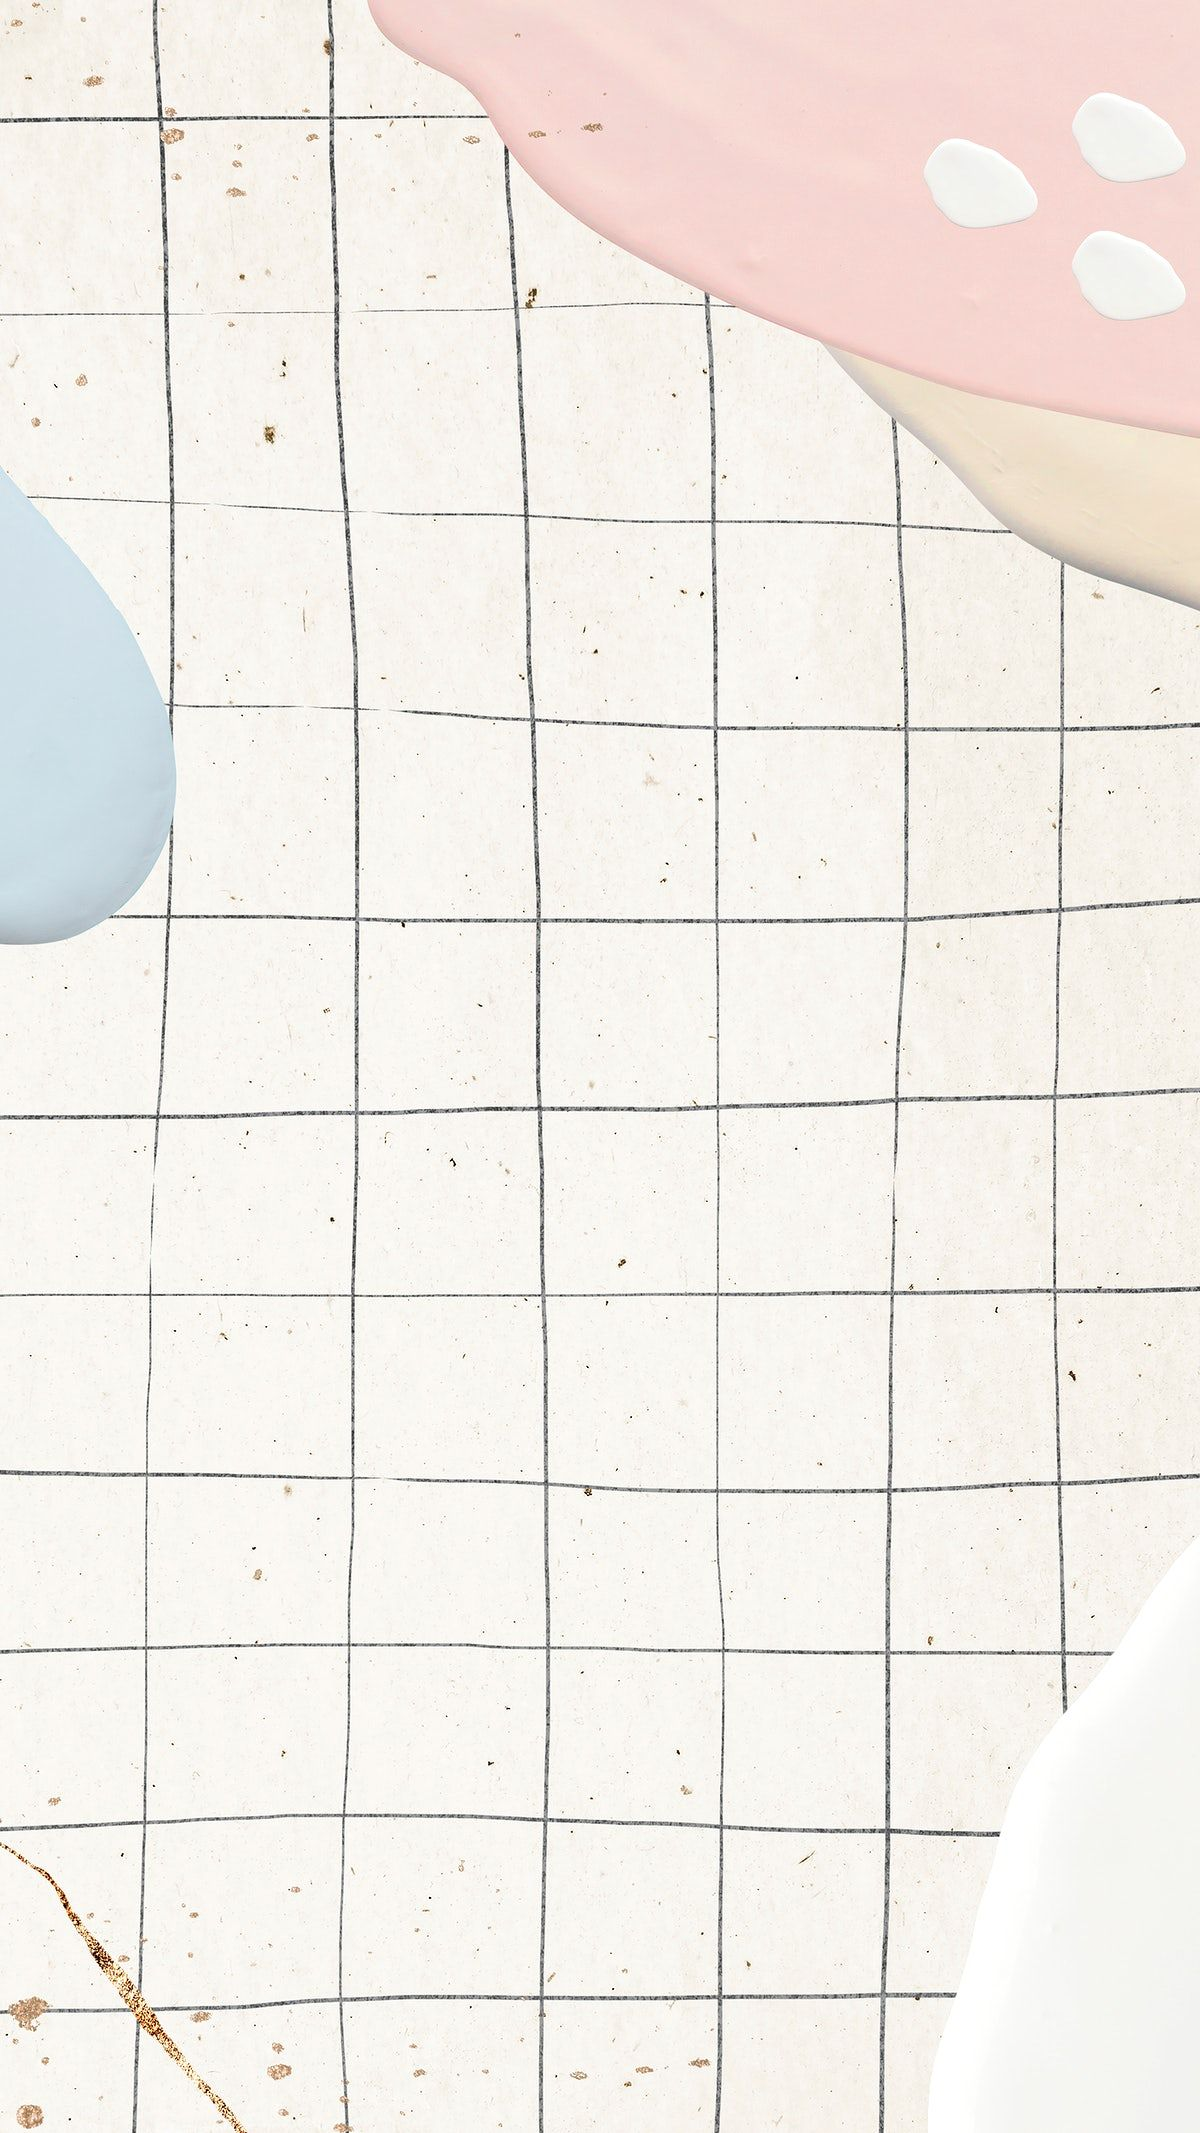 Pin By Fyrespaldo On Proyectos Que Debo Intentar Pastel Painting Abstract Grid Wallpaper